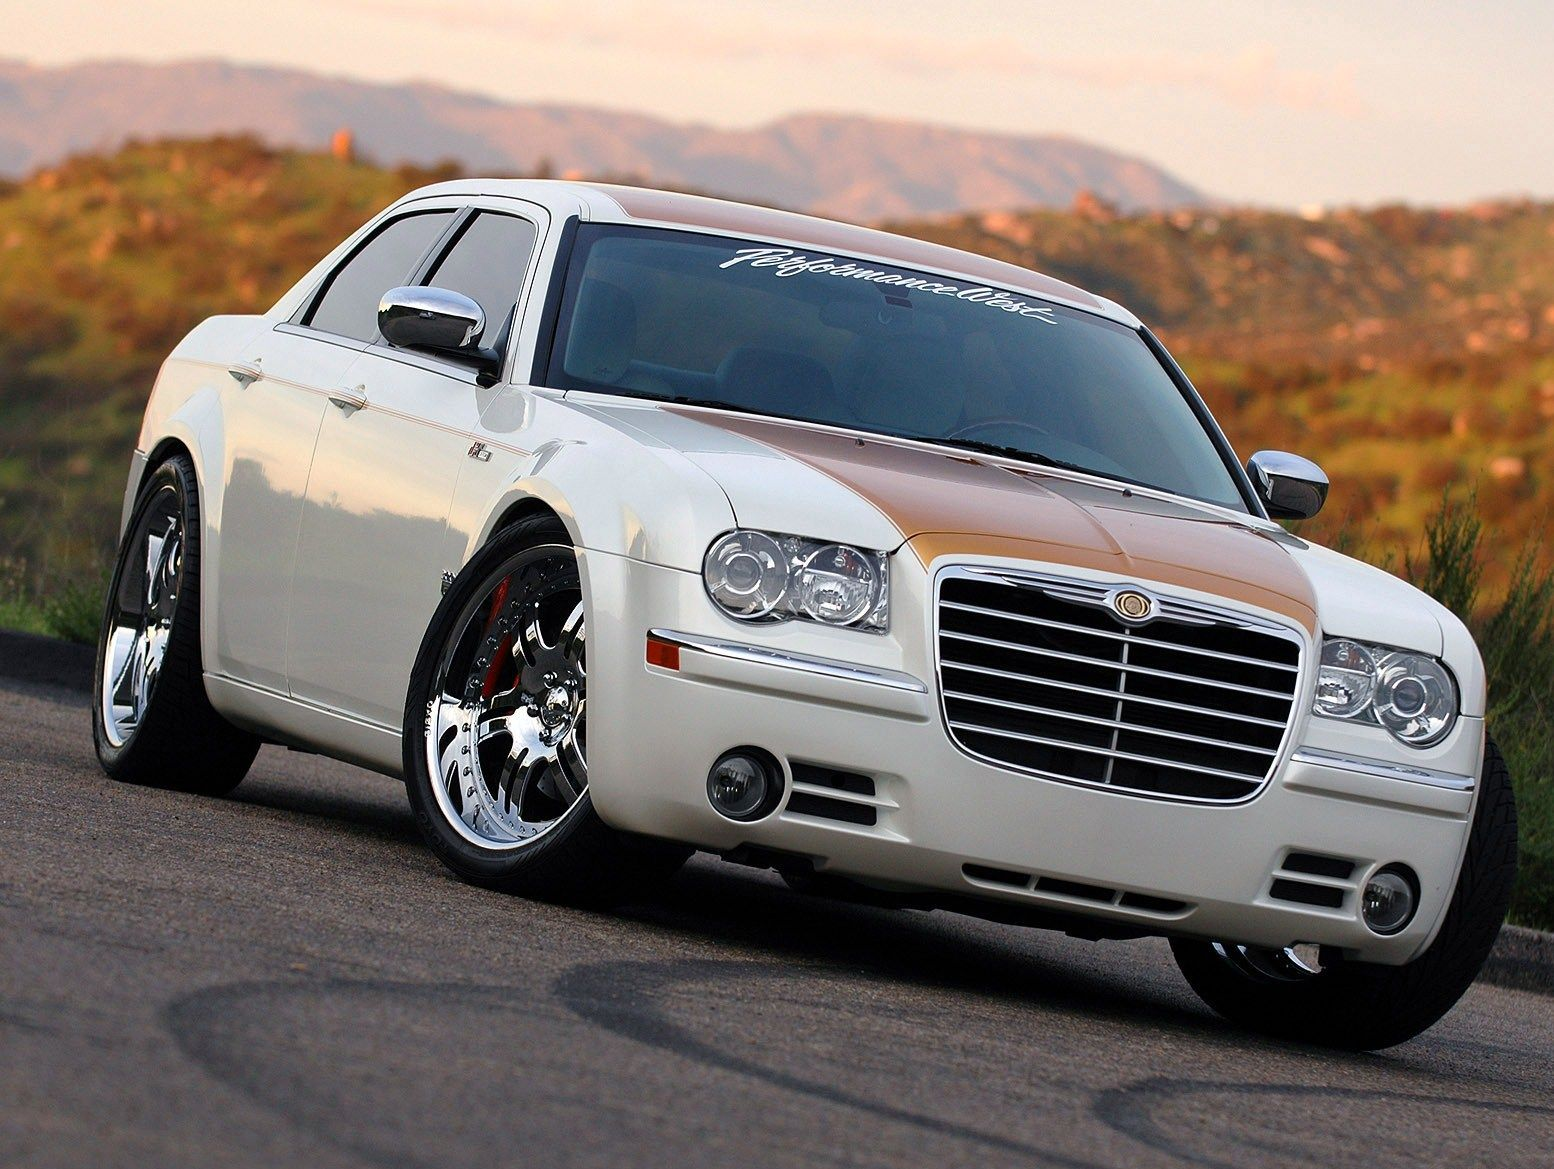 2005 chrysler 300 lambo doors planes trains and automobiles 2005 chrysler 300 lambo doors planes trains and automobiles pinterest chrysler 300 chrysler 300c and cars vanachro Image collections